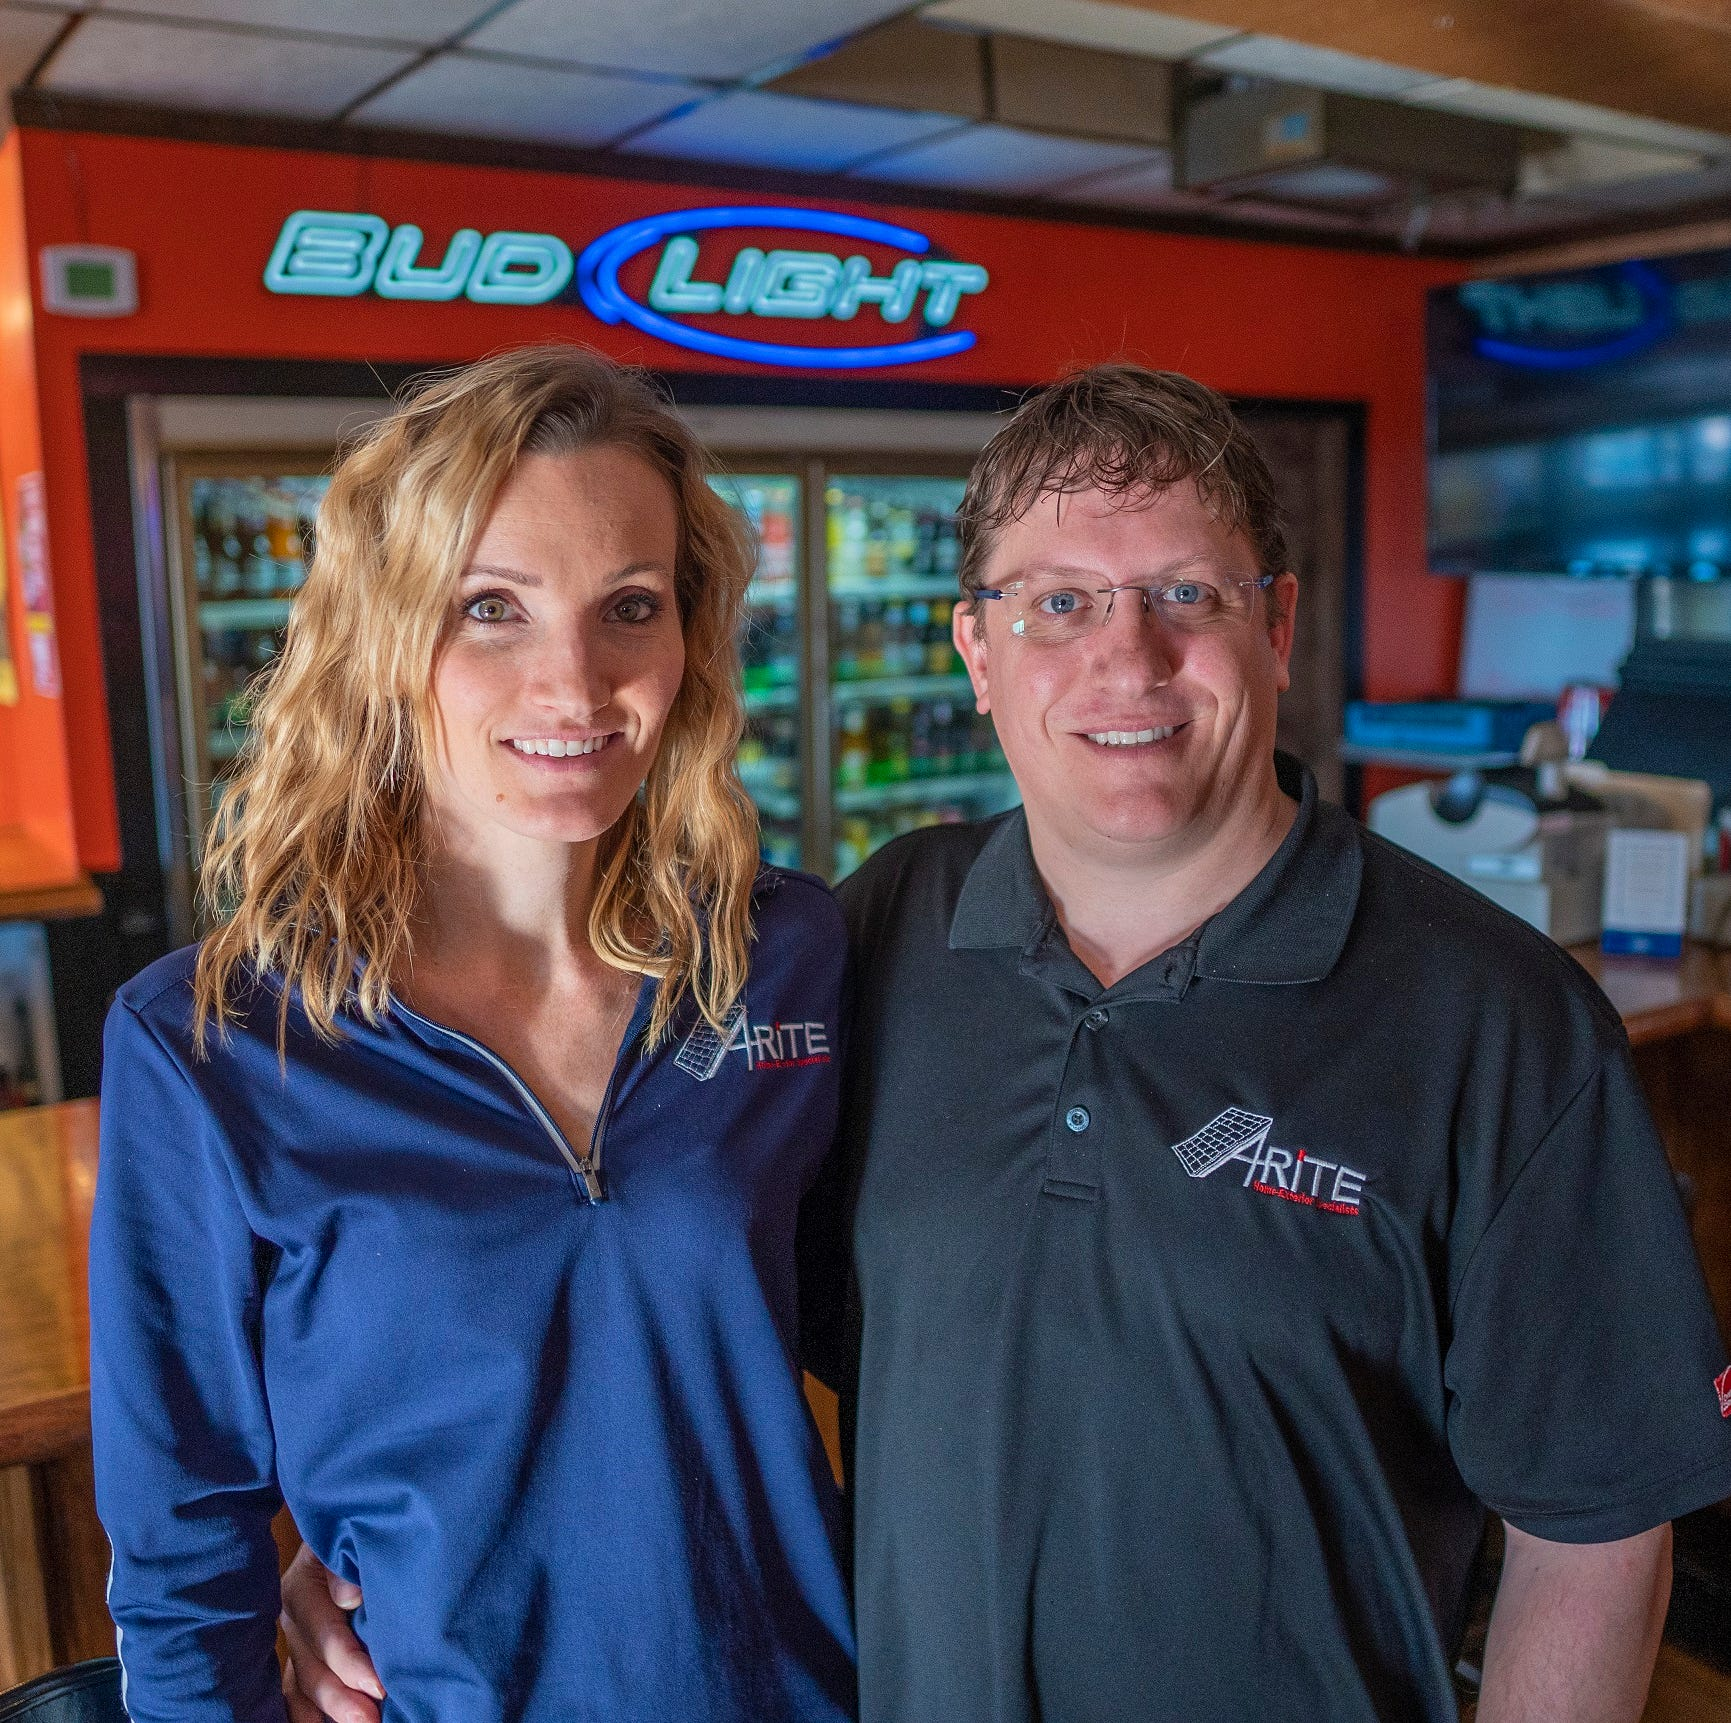 'It's been a great run': Wausau area bar IDK Wings to close after 18 years in business